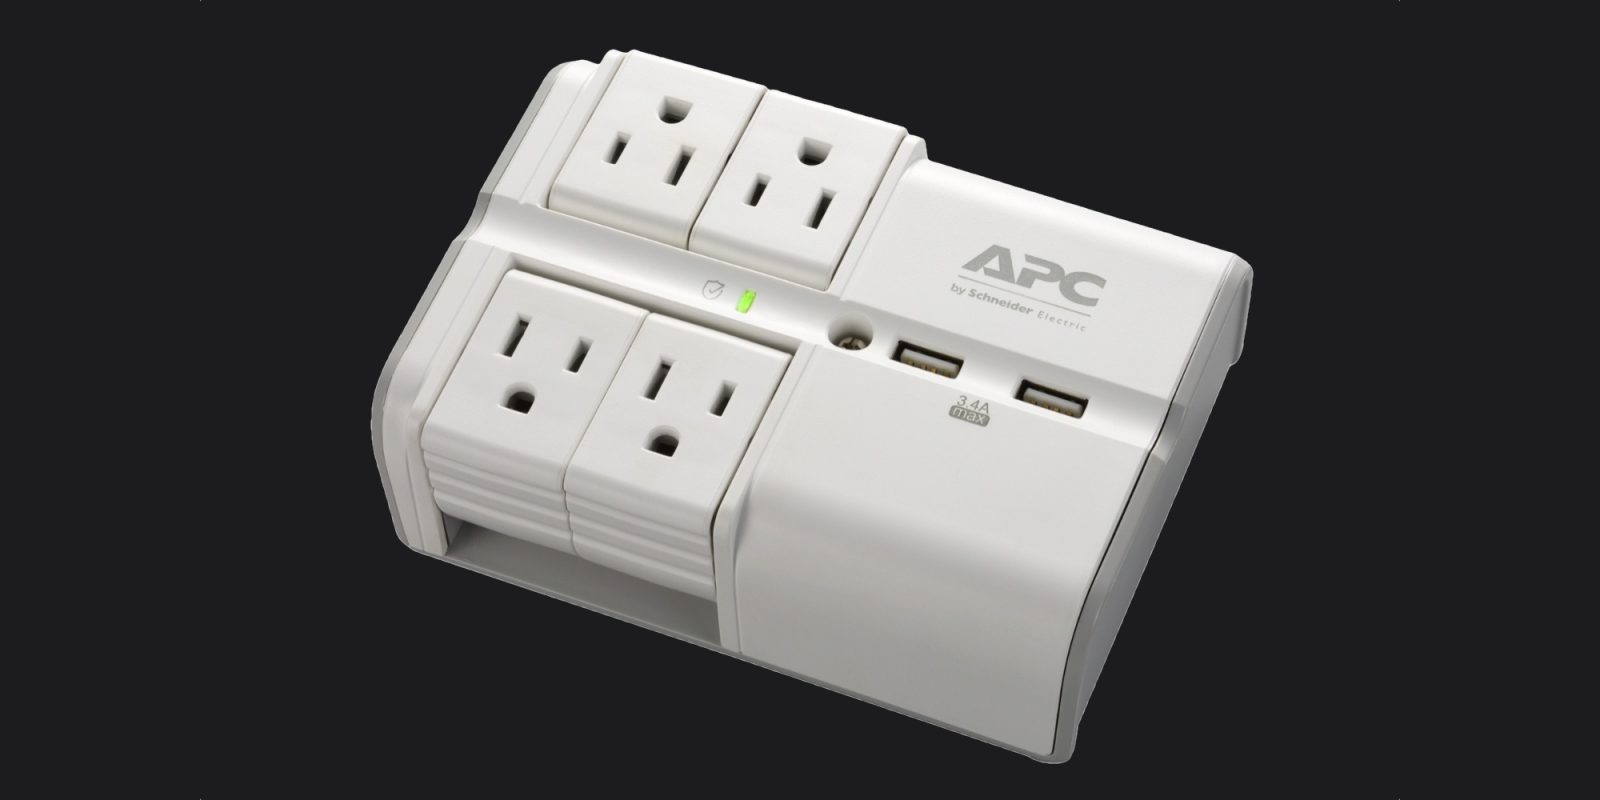 APC's Wall Pivot-Plug Surge Protector is an essential desk upgrade at $22